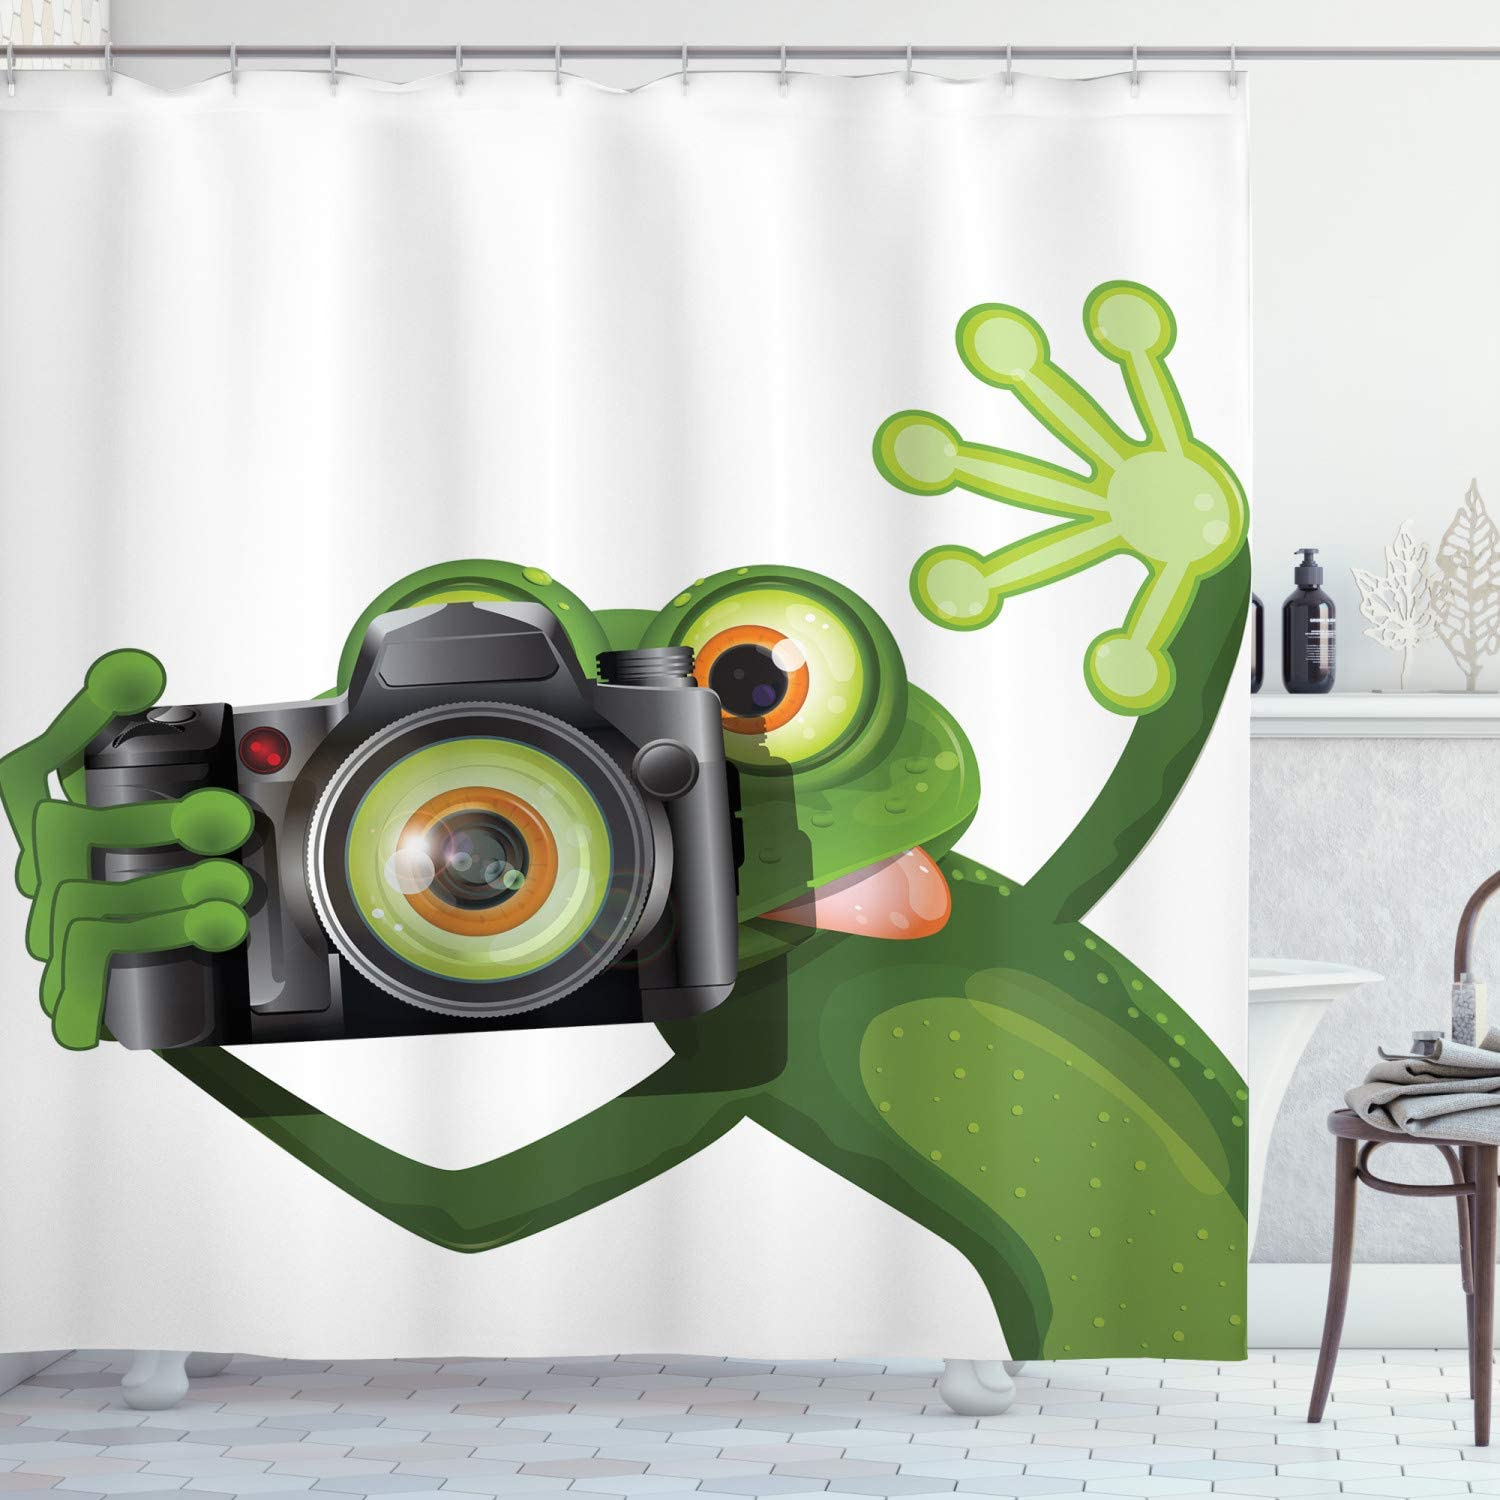 Ambesonne Animal Shower Curtain, Photographer Merry Green Frog Taking a Picture with His Funny, Cloth Fabric Bathroom Decor Set with Hooks, 84 Long Extra, Kelly Green